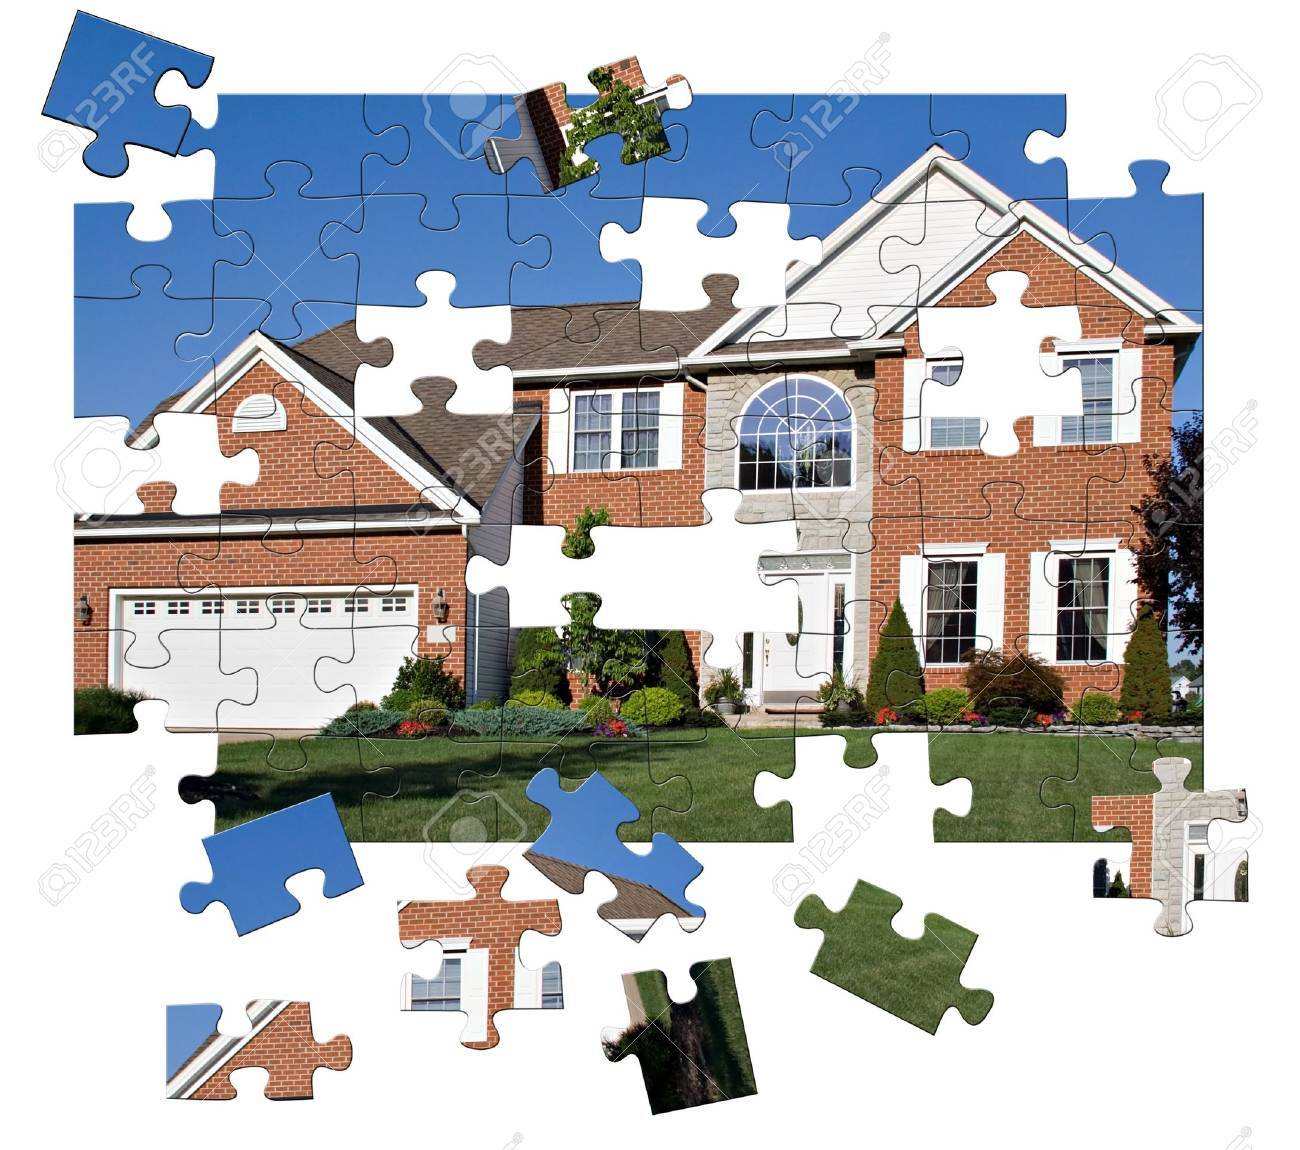 Concept - House Puzzle. Brick and stone colonial home in the suburbs. Stock Photo - 838837